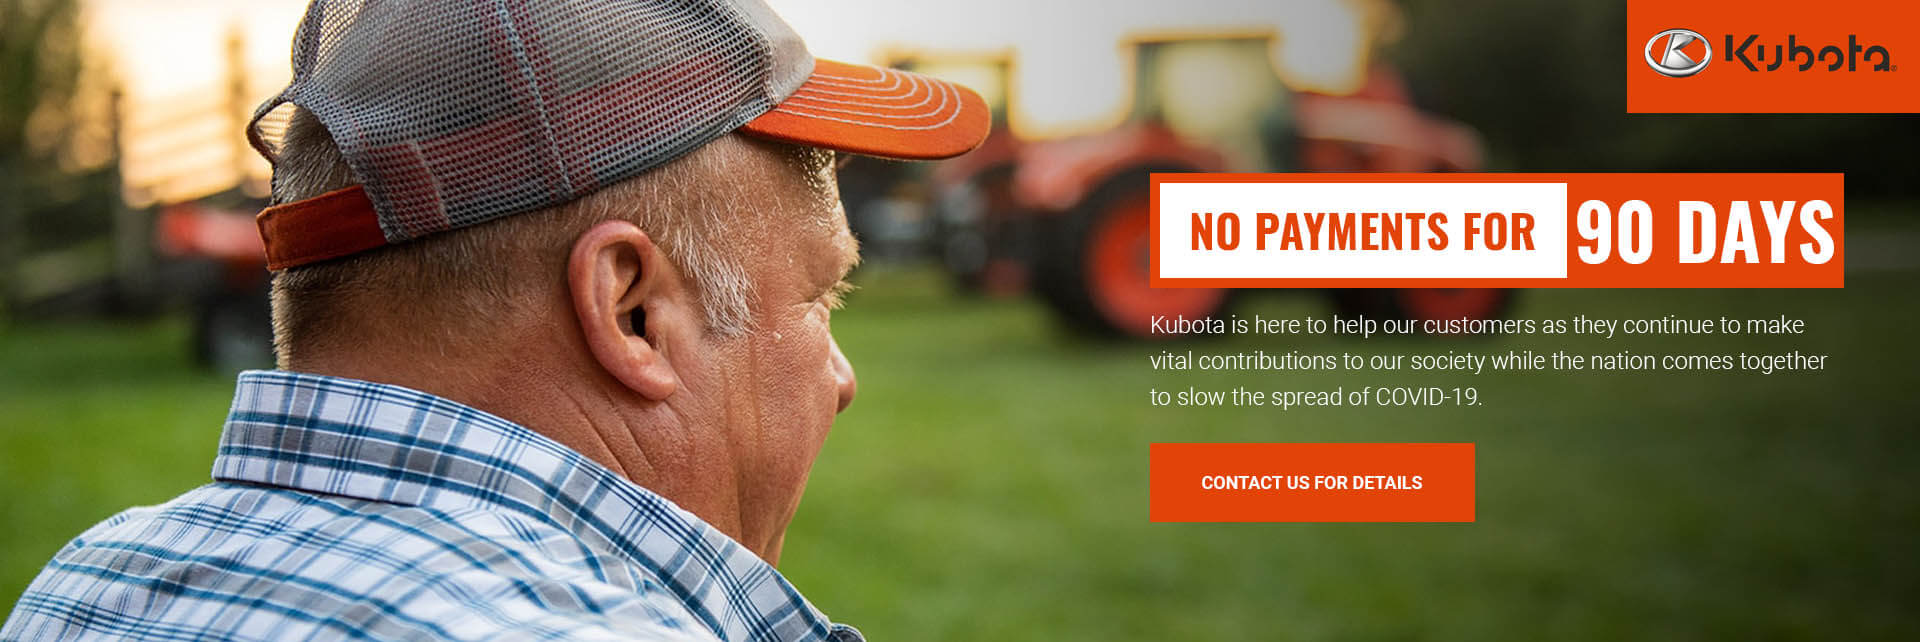 NO PAYMENTS FOR 90 DAYS - Kubota is here to help our customers as they continue to make vital contributions to our society while the nation comes together to slow the spread of COVID-19.